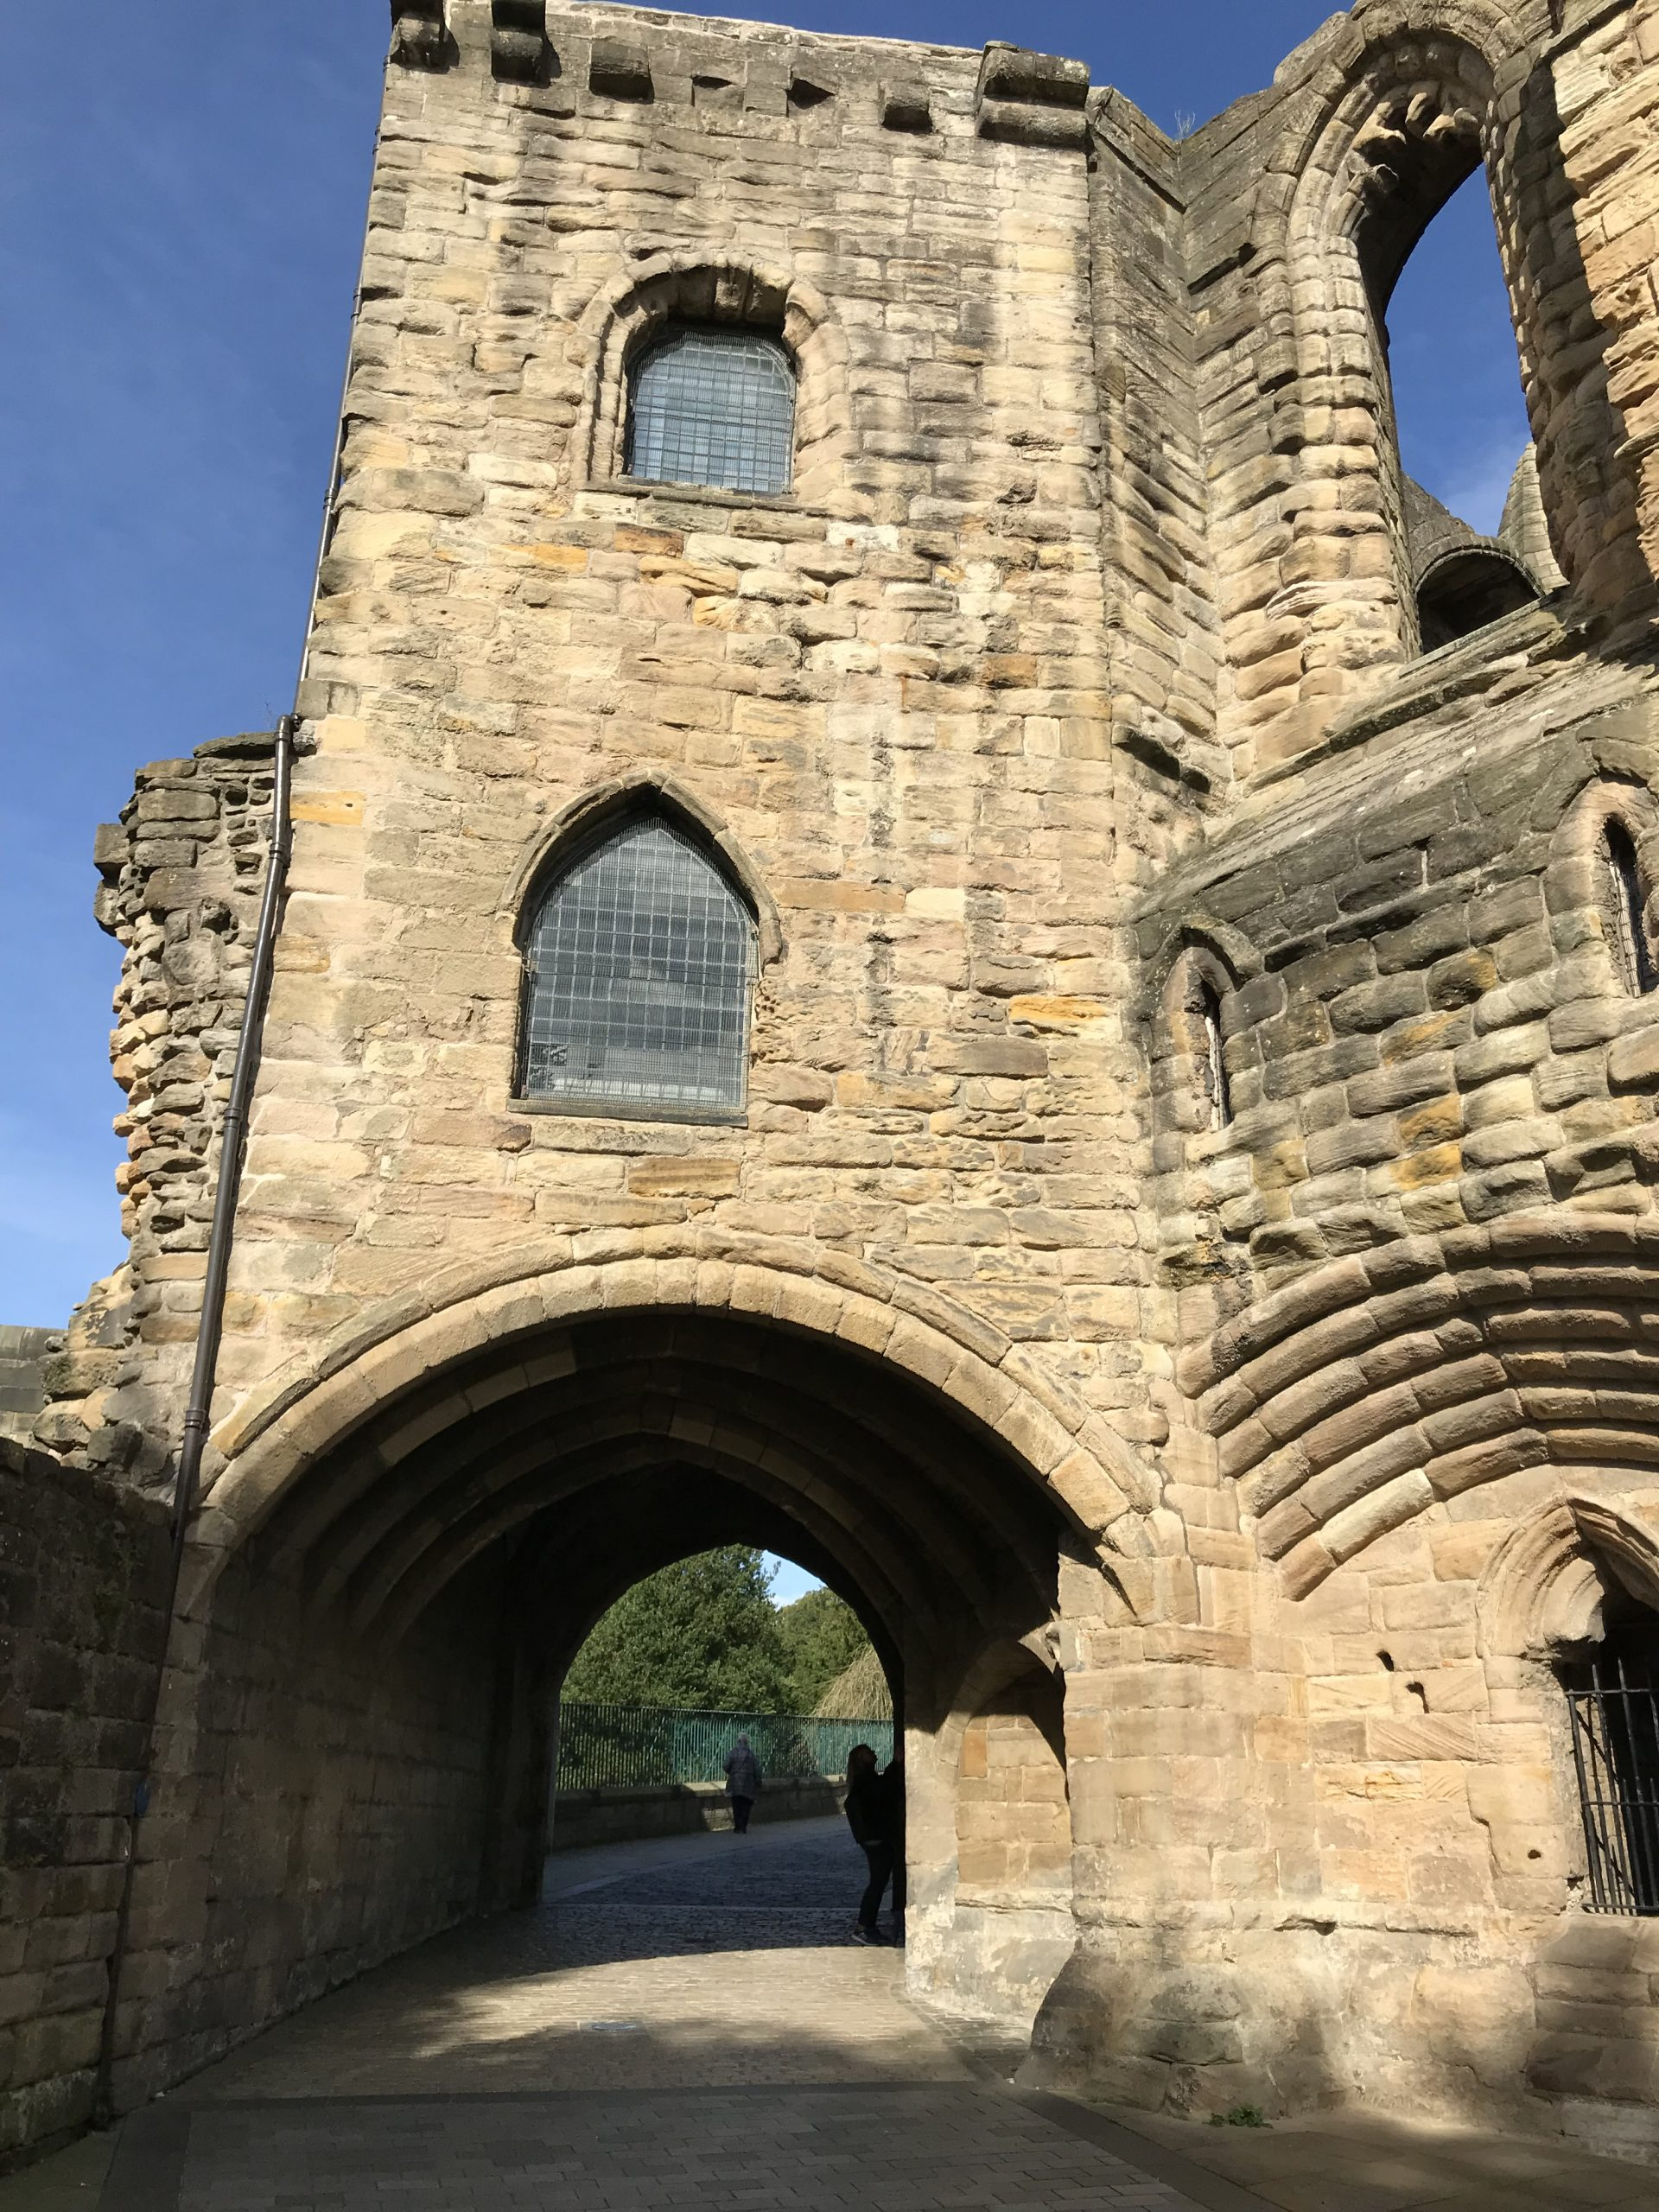 Stone building showing gateway arch called The Pends. Below tower from ruined Abbey buildings